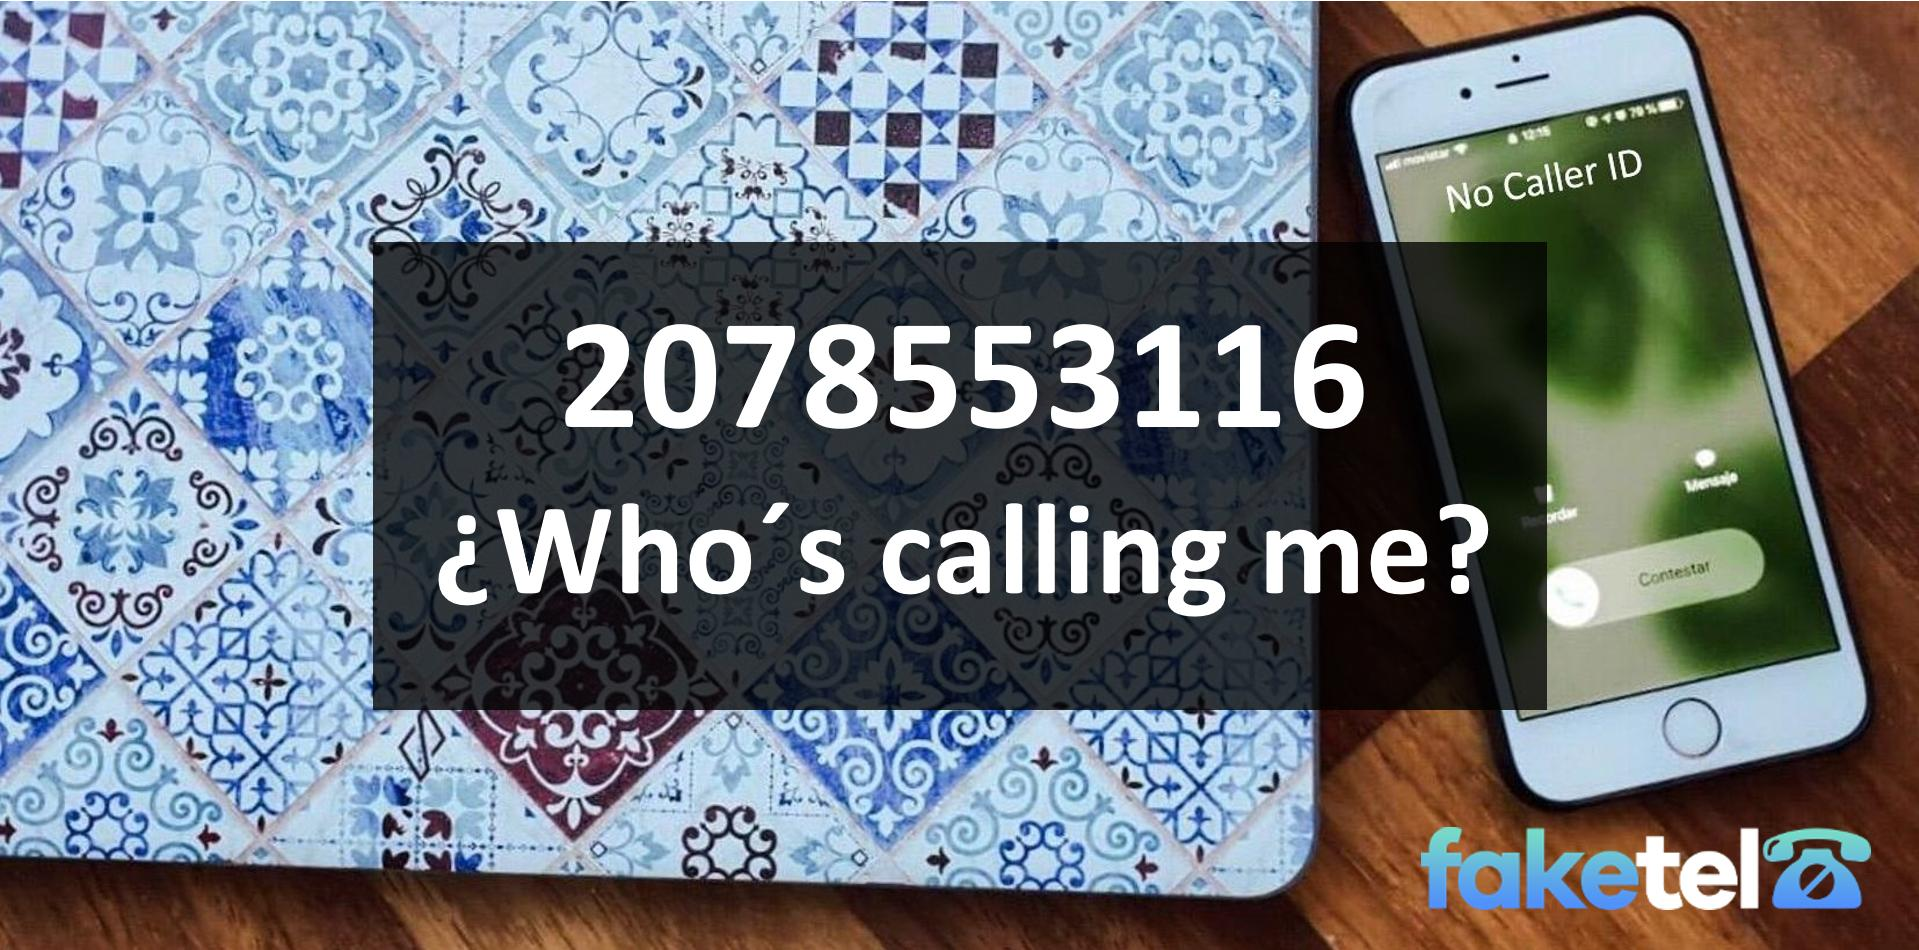 who is calling me 2078553116